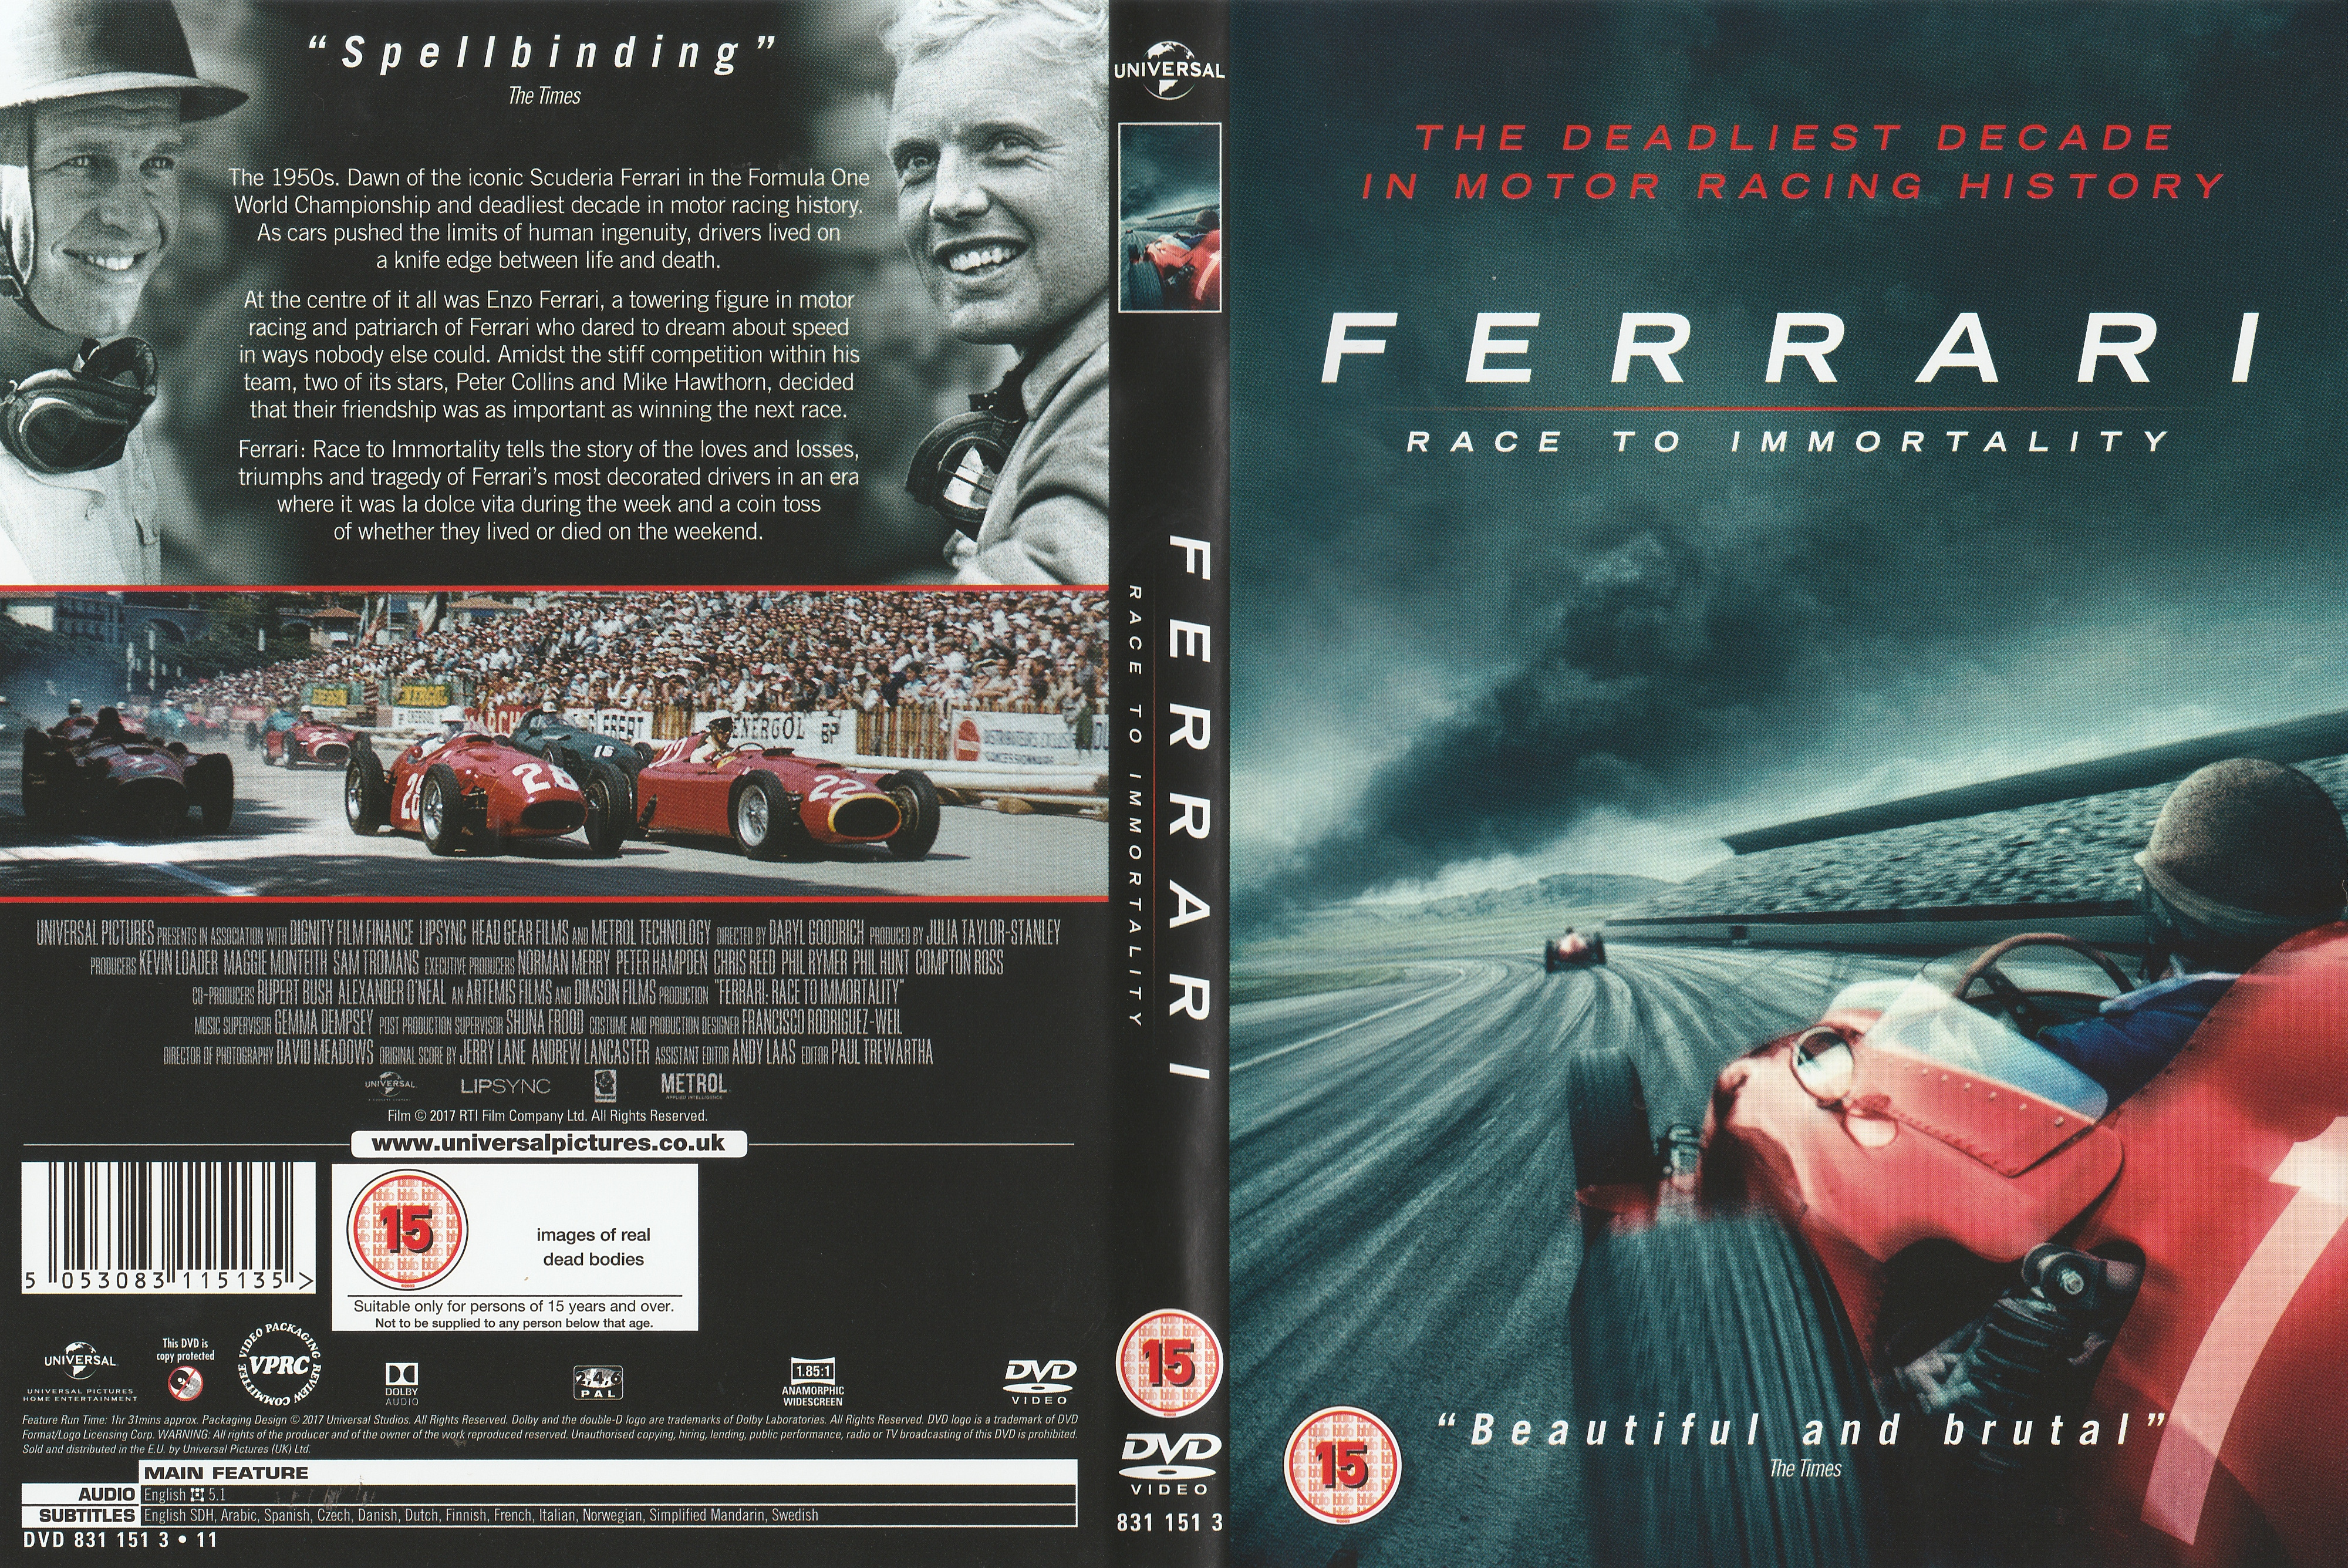 New Trans Am >> Team DVD/VCRs | The Motor Racing Programme Covers Project